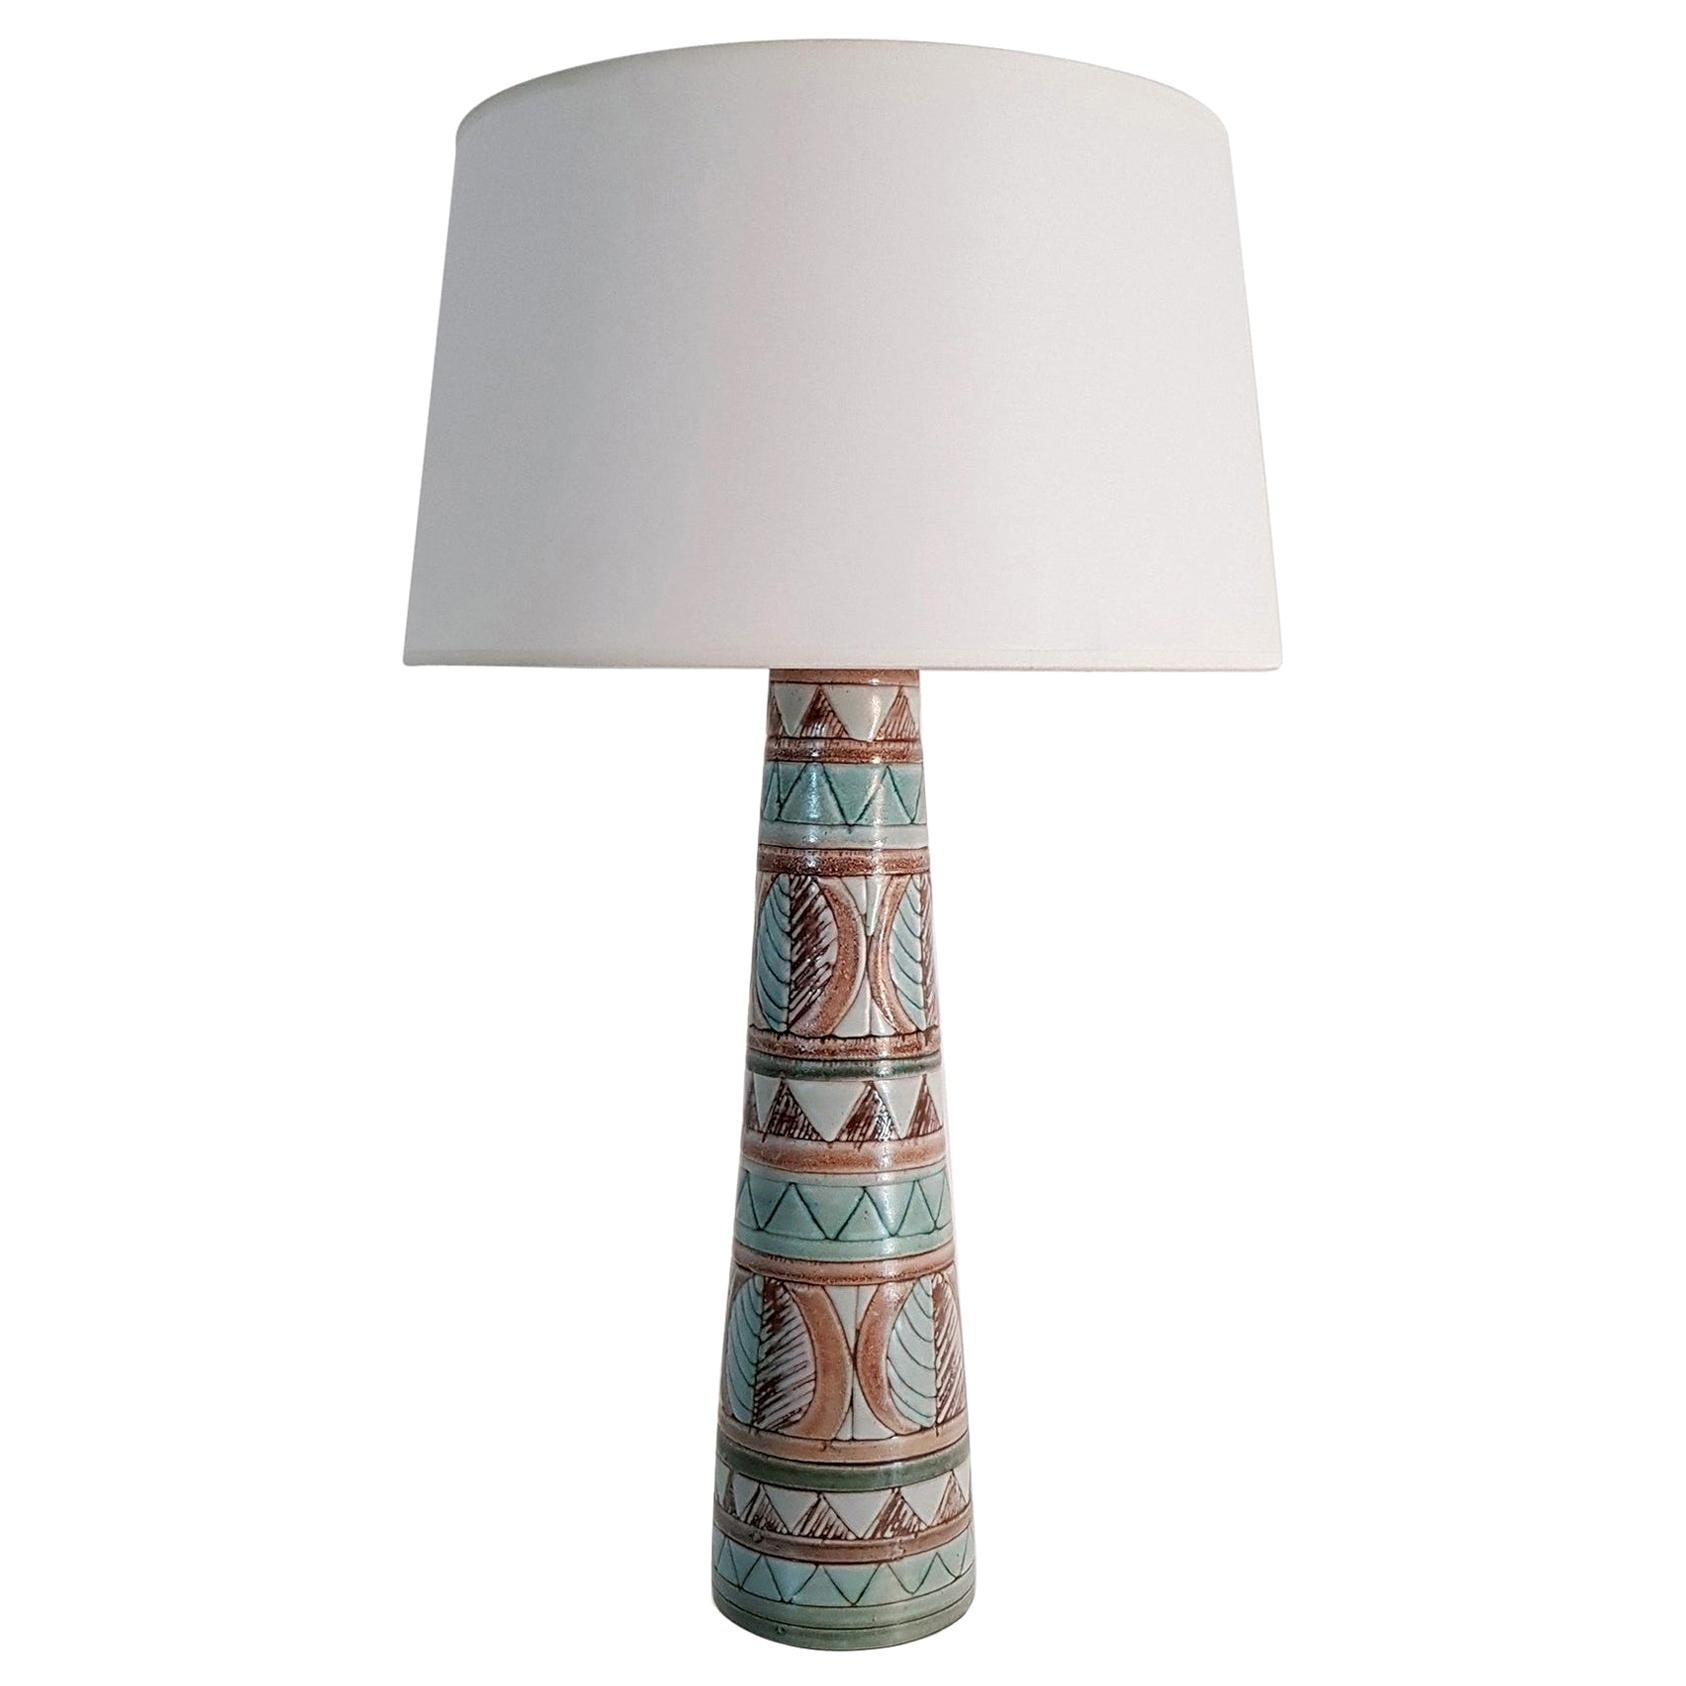 Midcentury Ceramic Table Lamp Made in Sweden